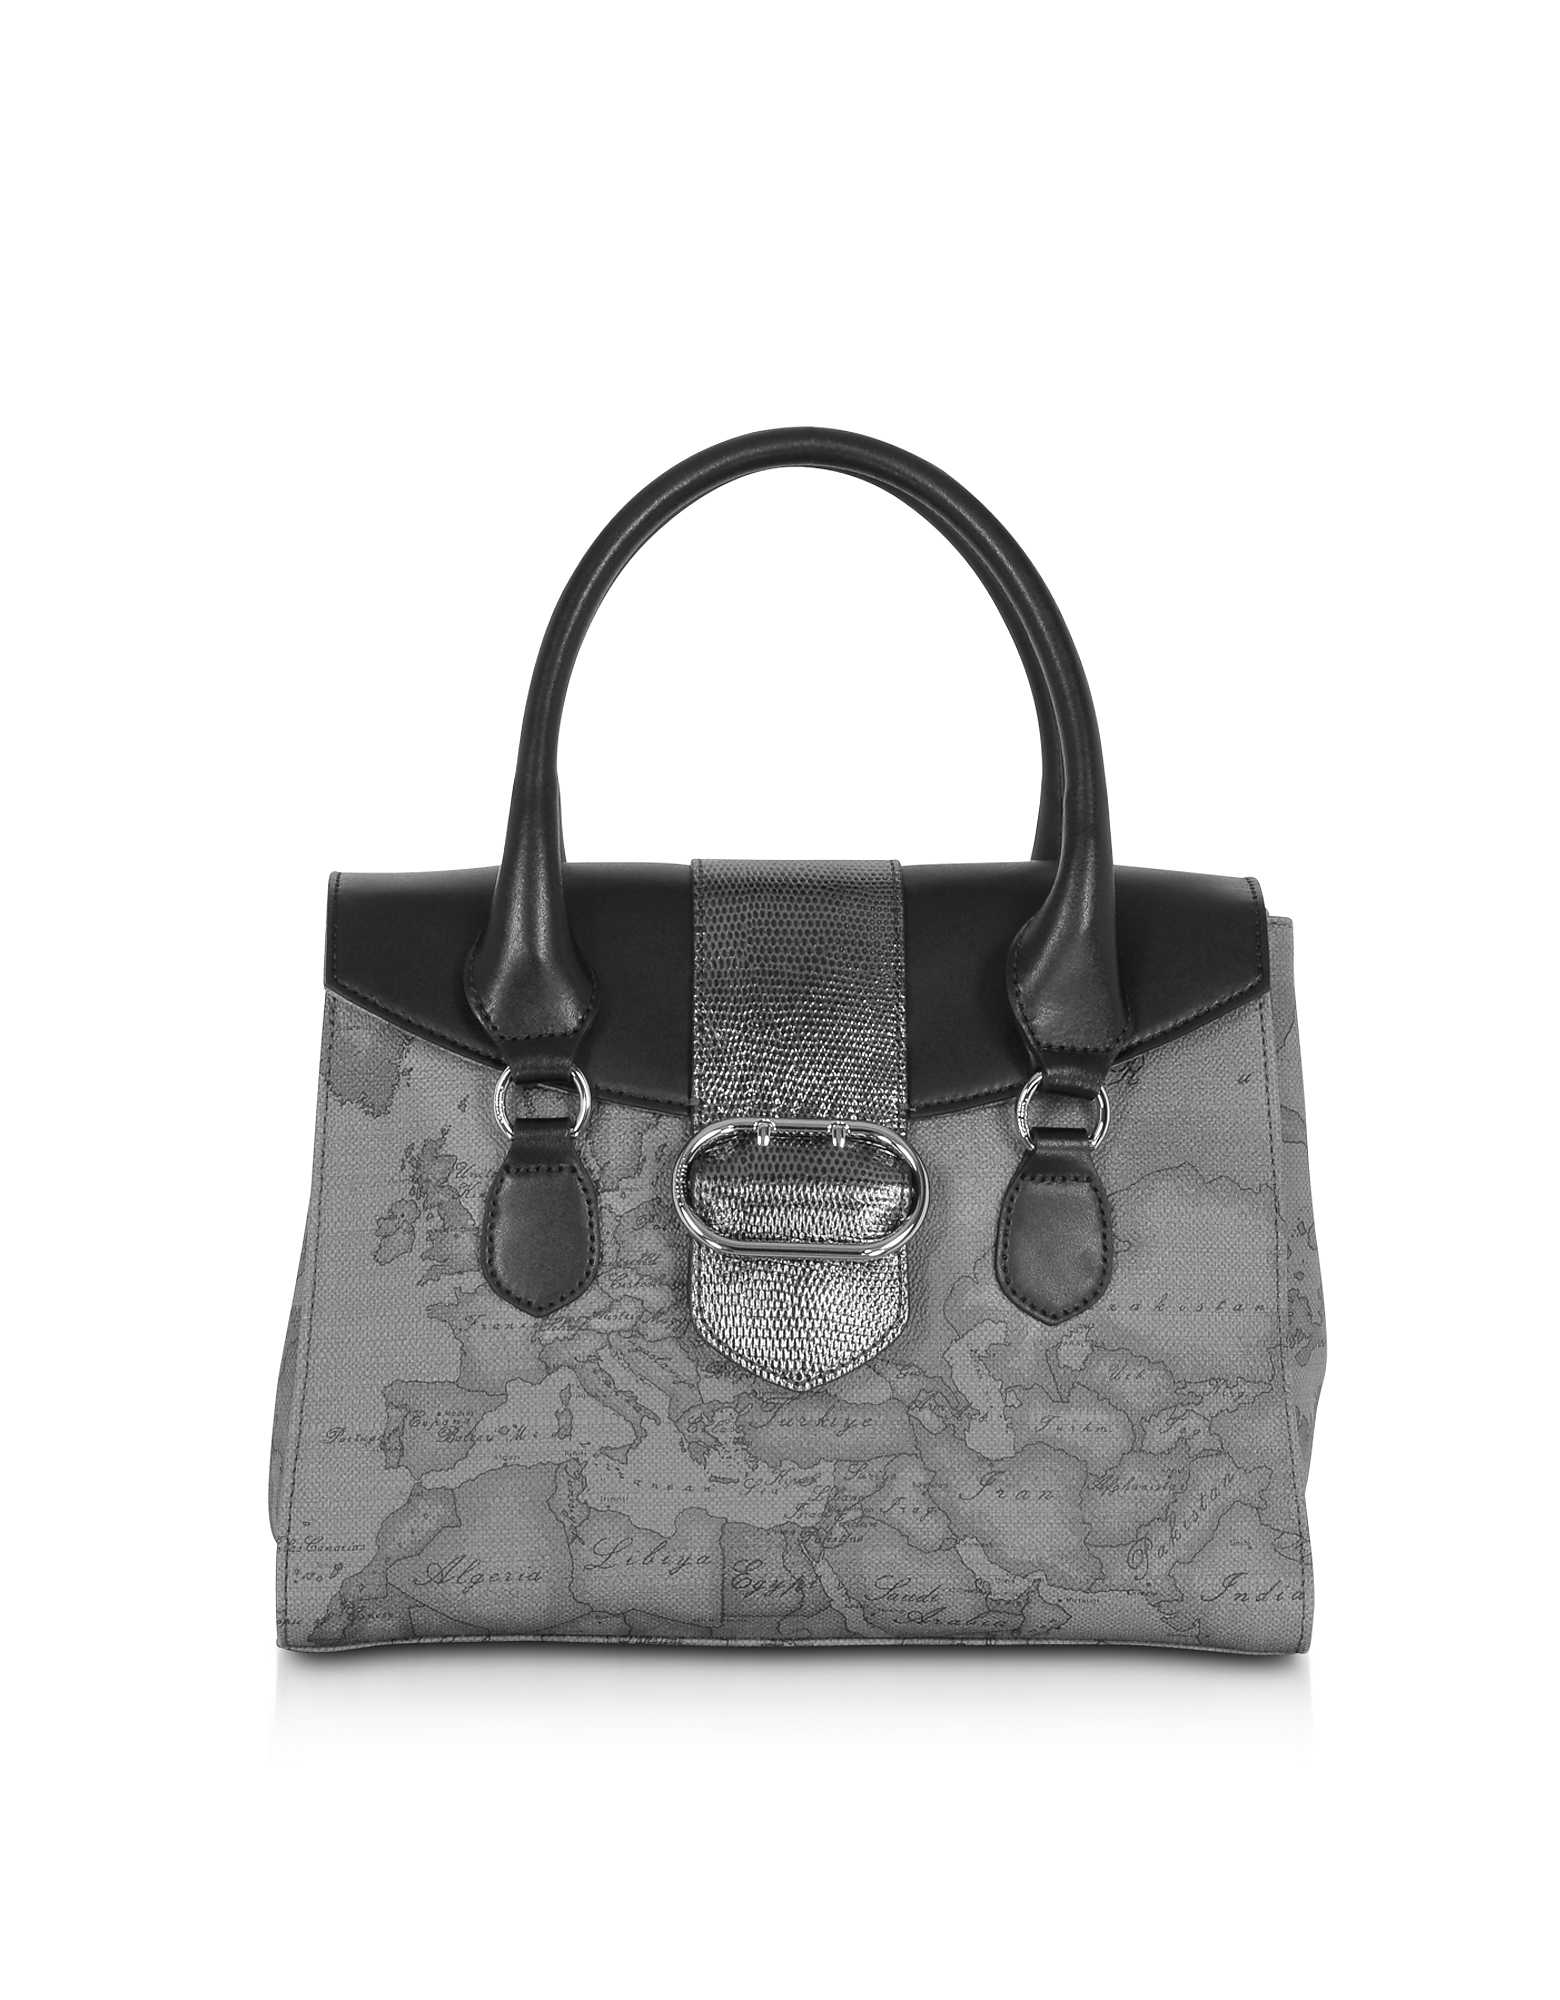 Alviero Martini 1A Classe Handbags, Wonder Geo Small Satchel Bag